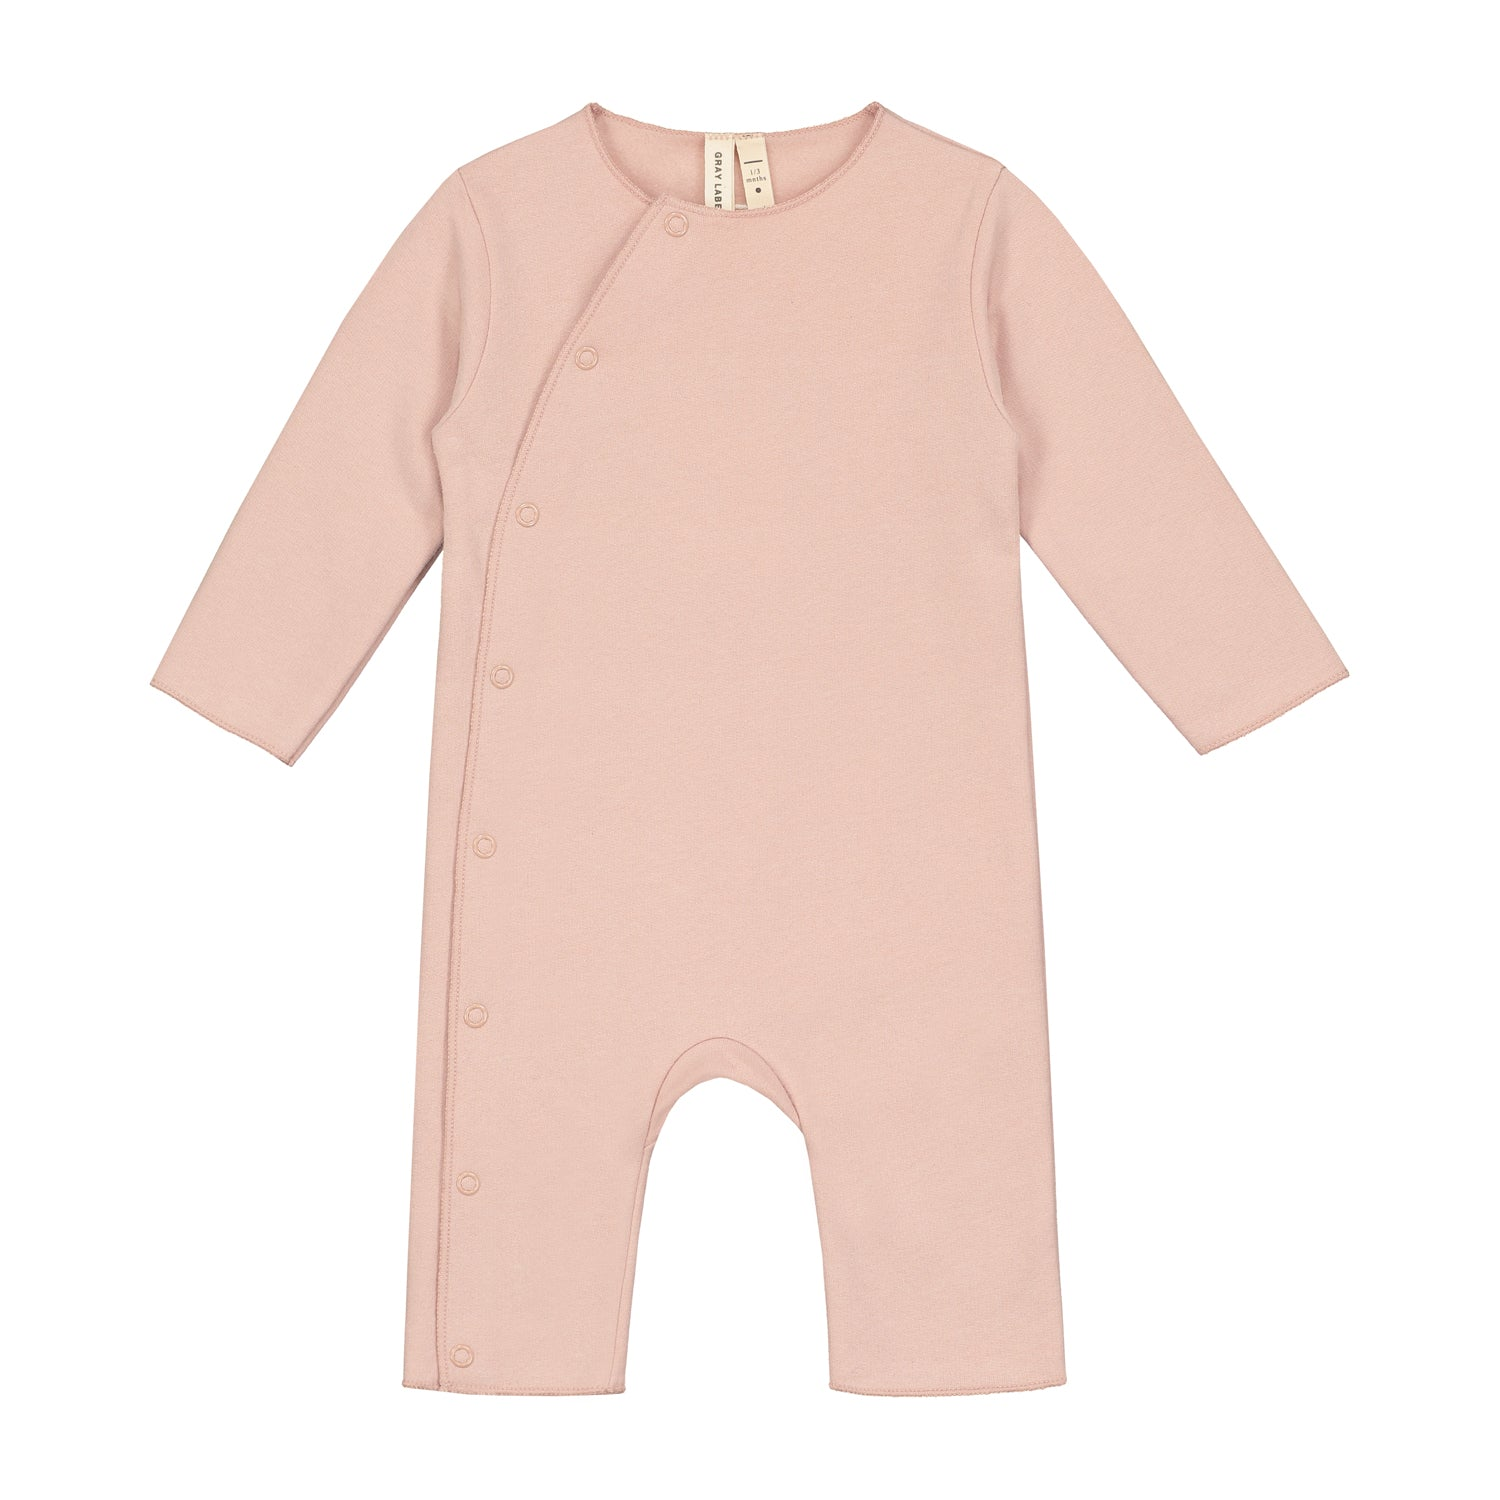 Suit Baby With Snaps Vintage Pink